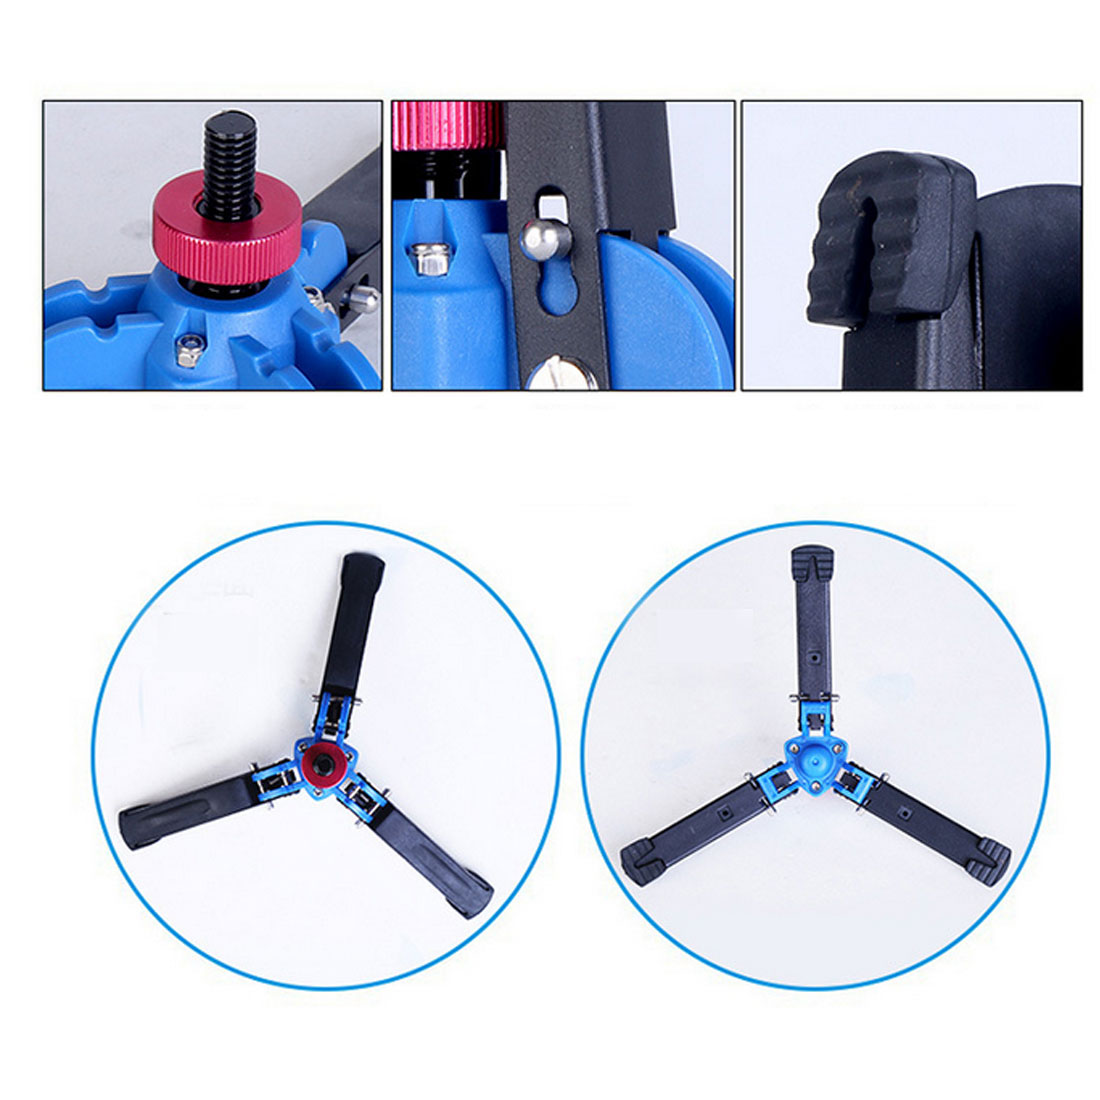 1pcs High Quality M-1 Hydraulic Universal Three Feet Support Stand Base for Monopod with 3/8 screw1pcs High Quality M-1 Hydraulic Universal Three Feet Support Stand Base for Monopod with 3/8 screw